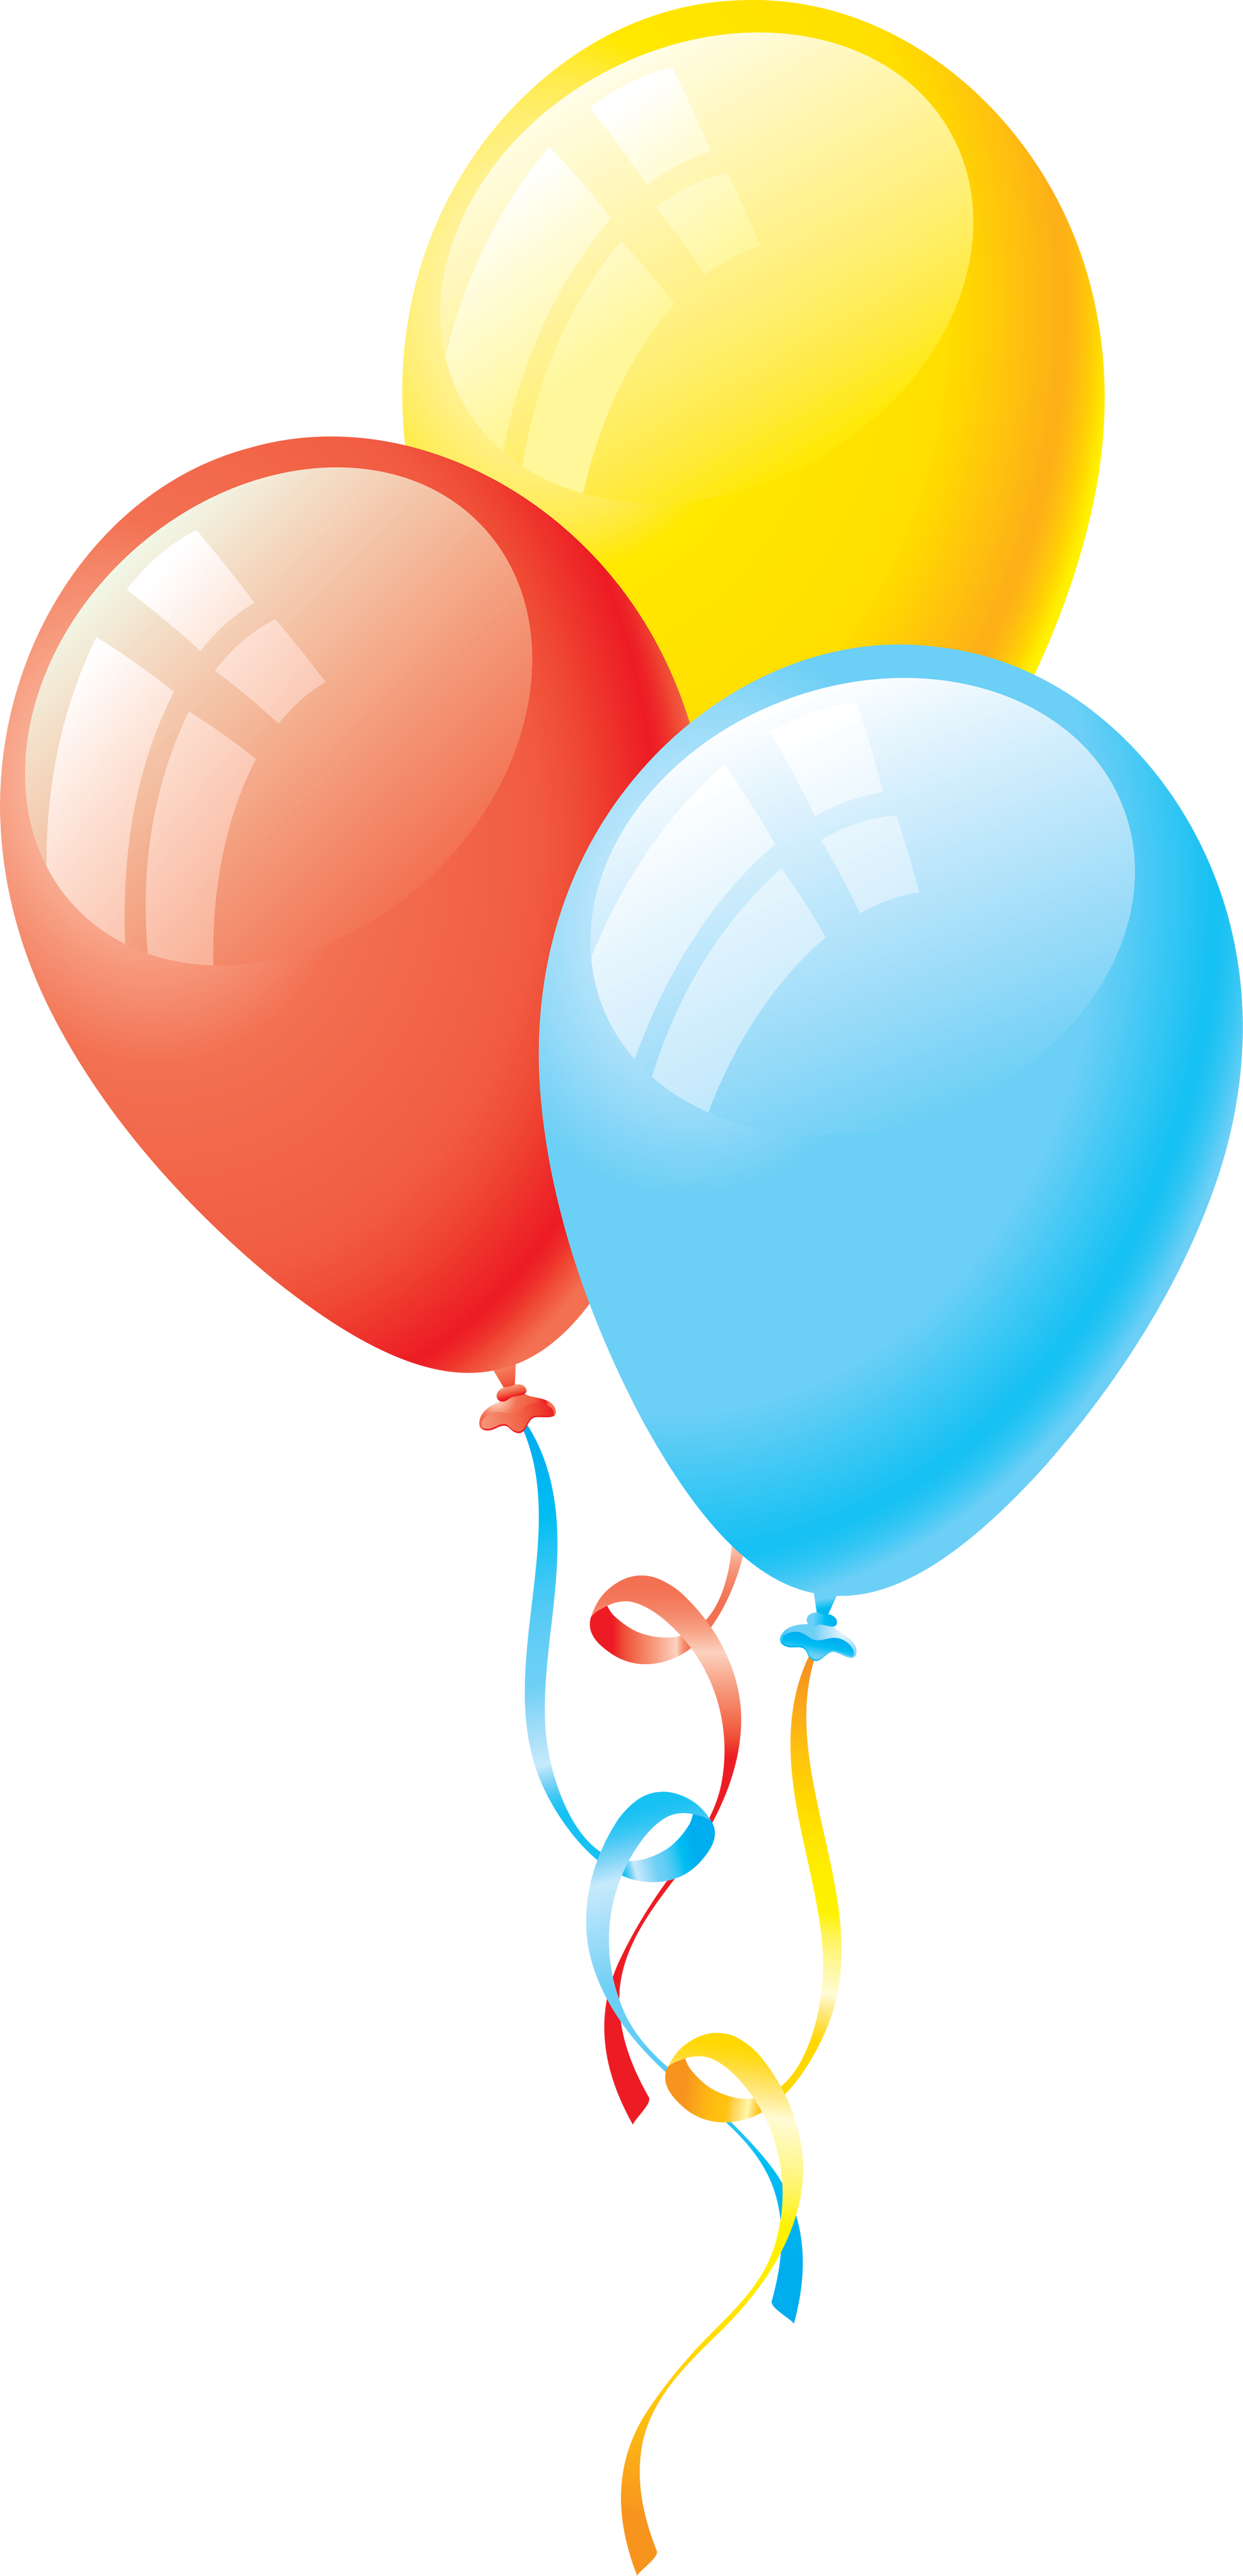 Colorful balloon PNG image, free download, balloons